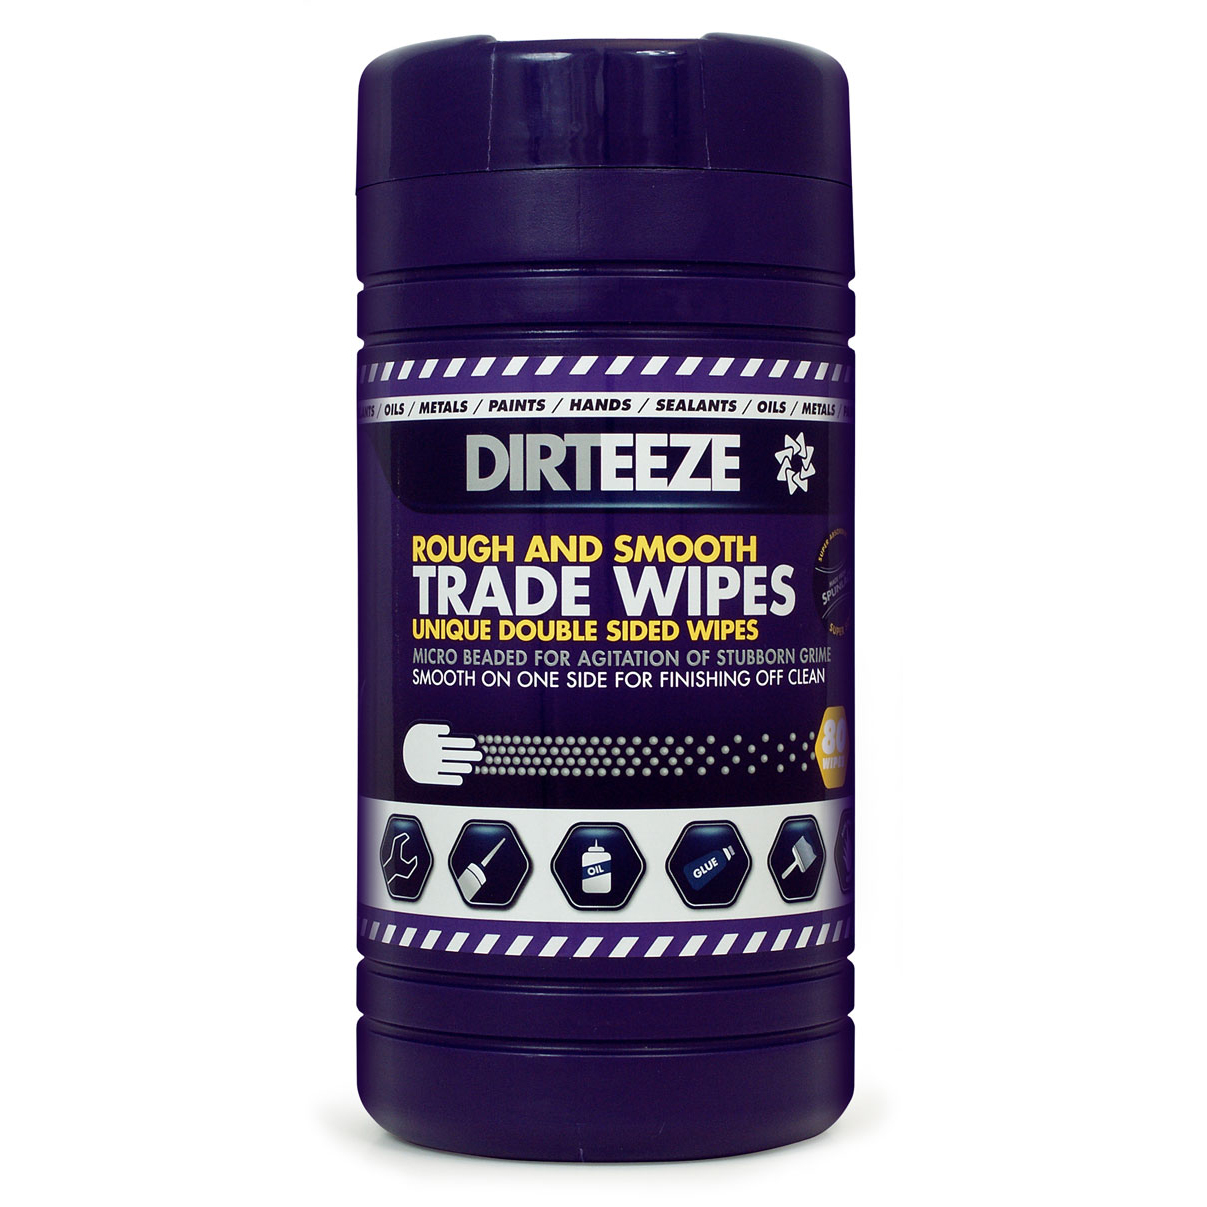 Dirteeze Rough & Smooth Wipes Dispenser Tub 220x200mm Ref DZRS80 80 Wipes *Up to 3 Day Leadtime*